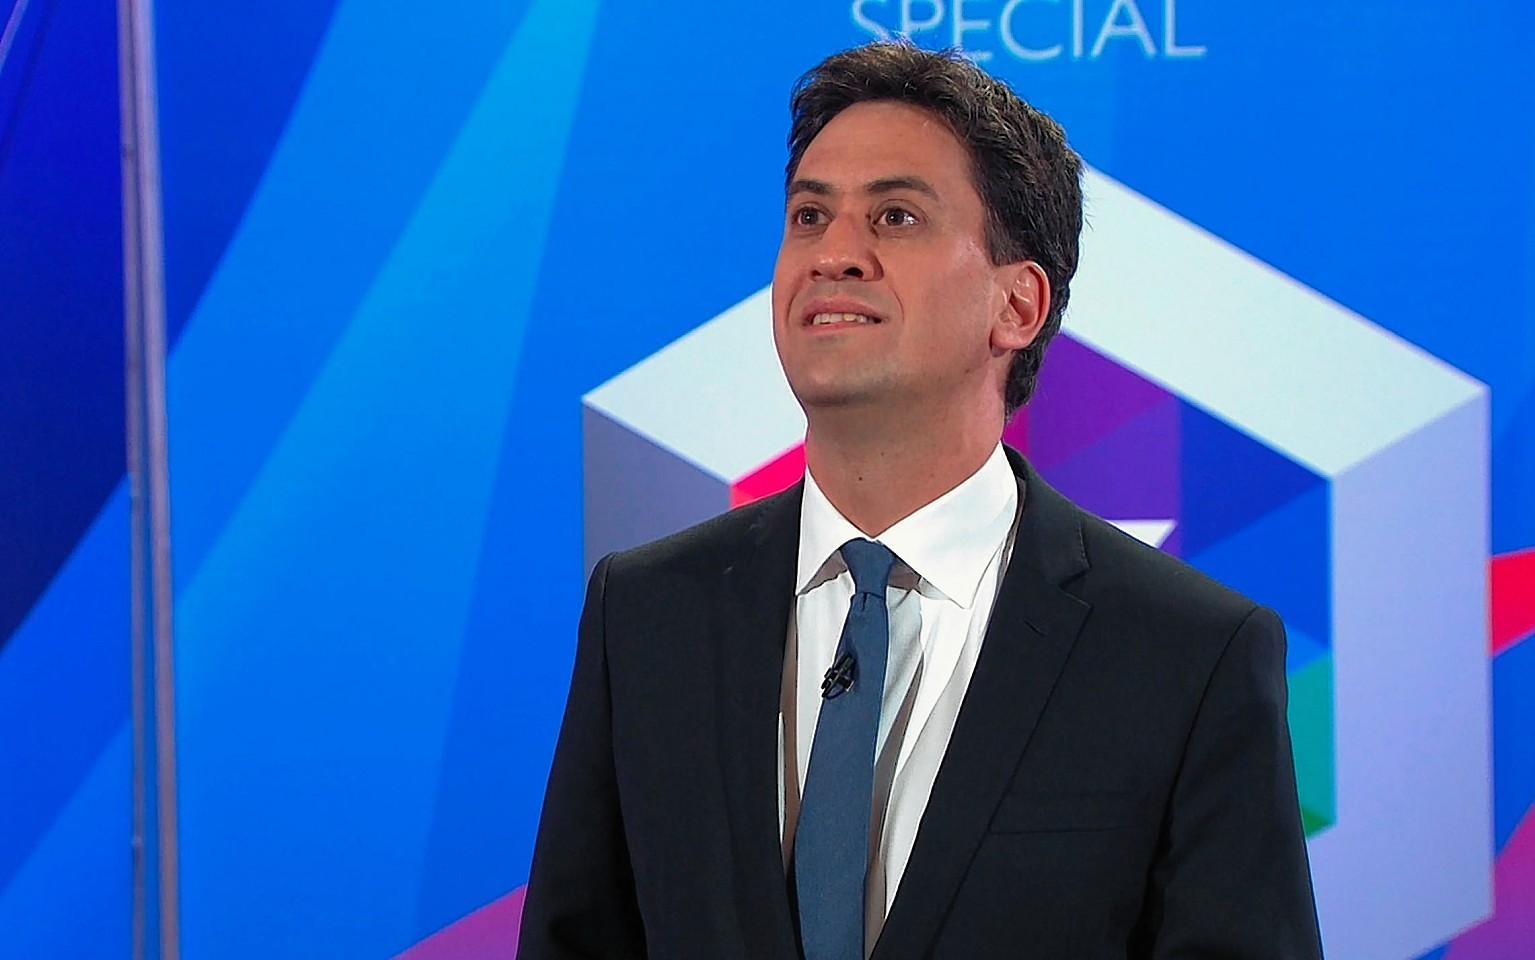 He defied Ed Miliband by opposing further austerity measures.